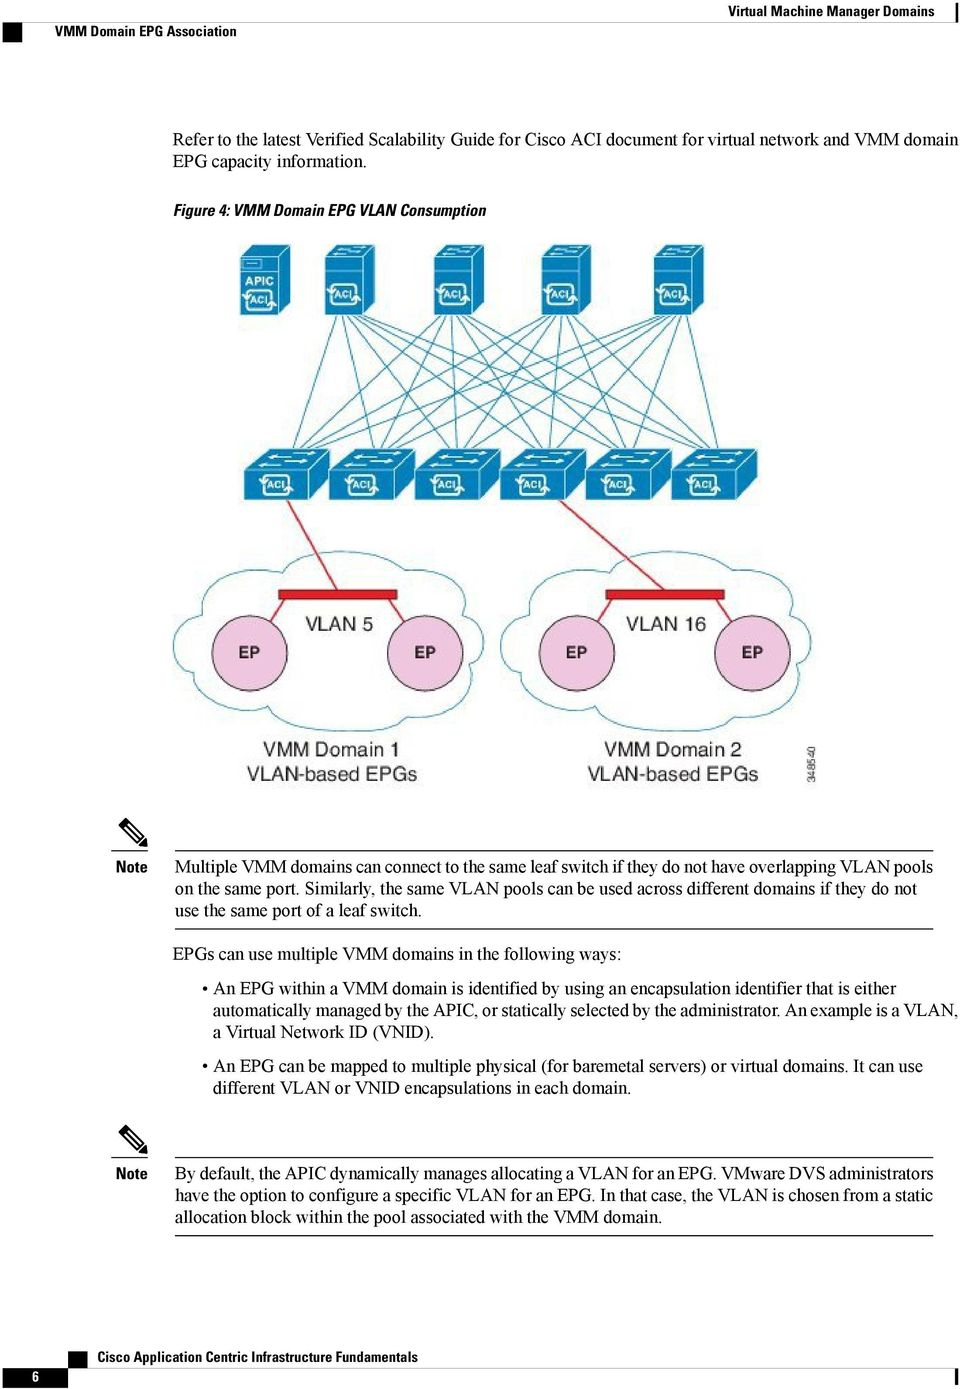 Similarly, the same VLAN pools can be used across different domains if they do not use the same port of a leaf switch.